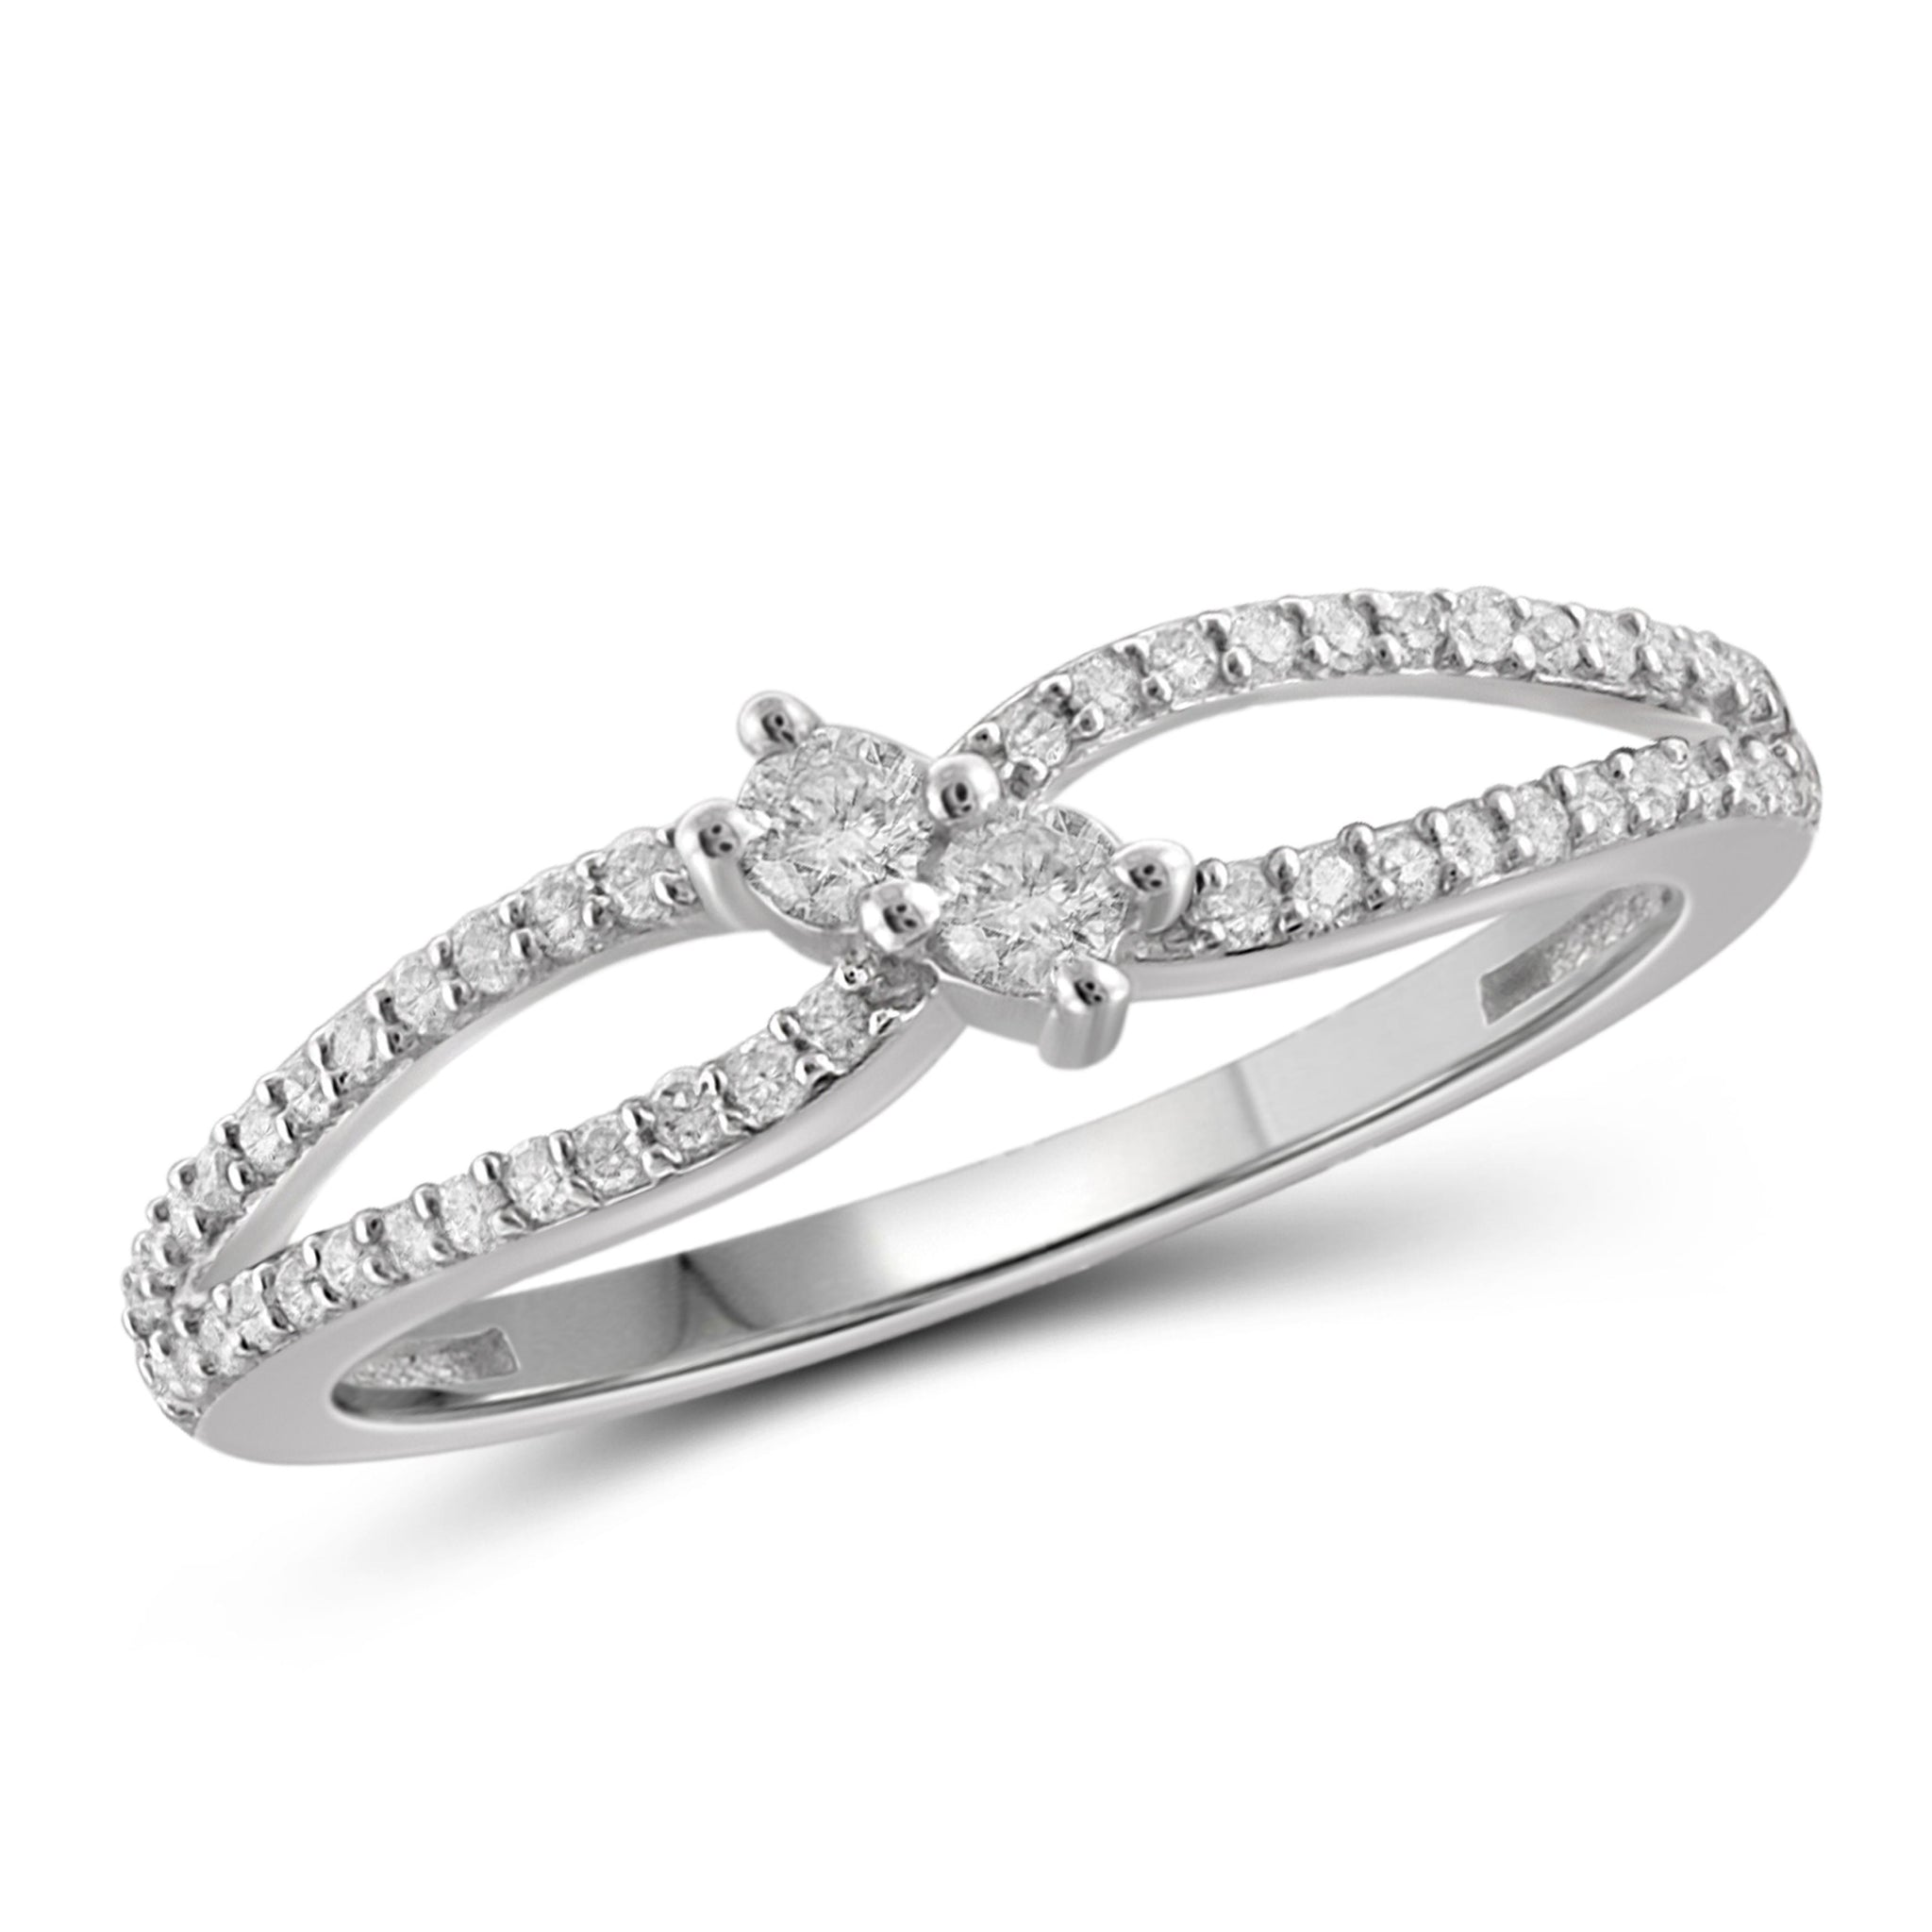 Jewelnova 1/4 Carat T.W. White Diamond 10K White Gold Promise Ring - Assorted Colors